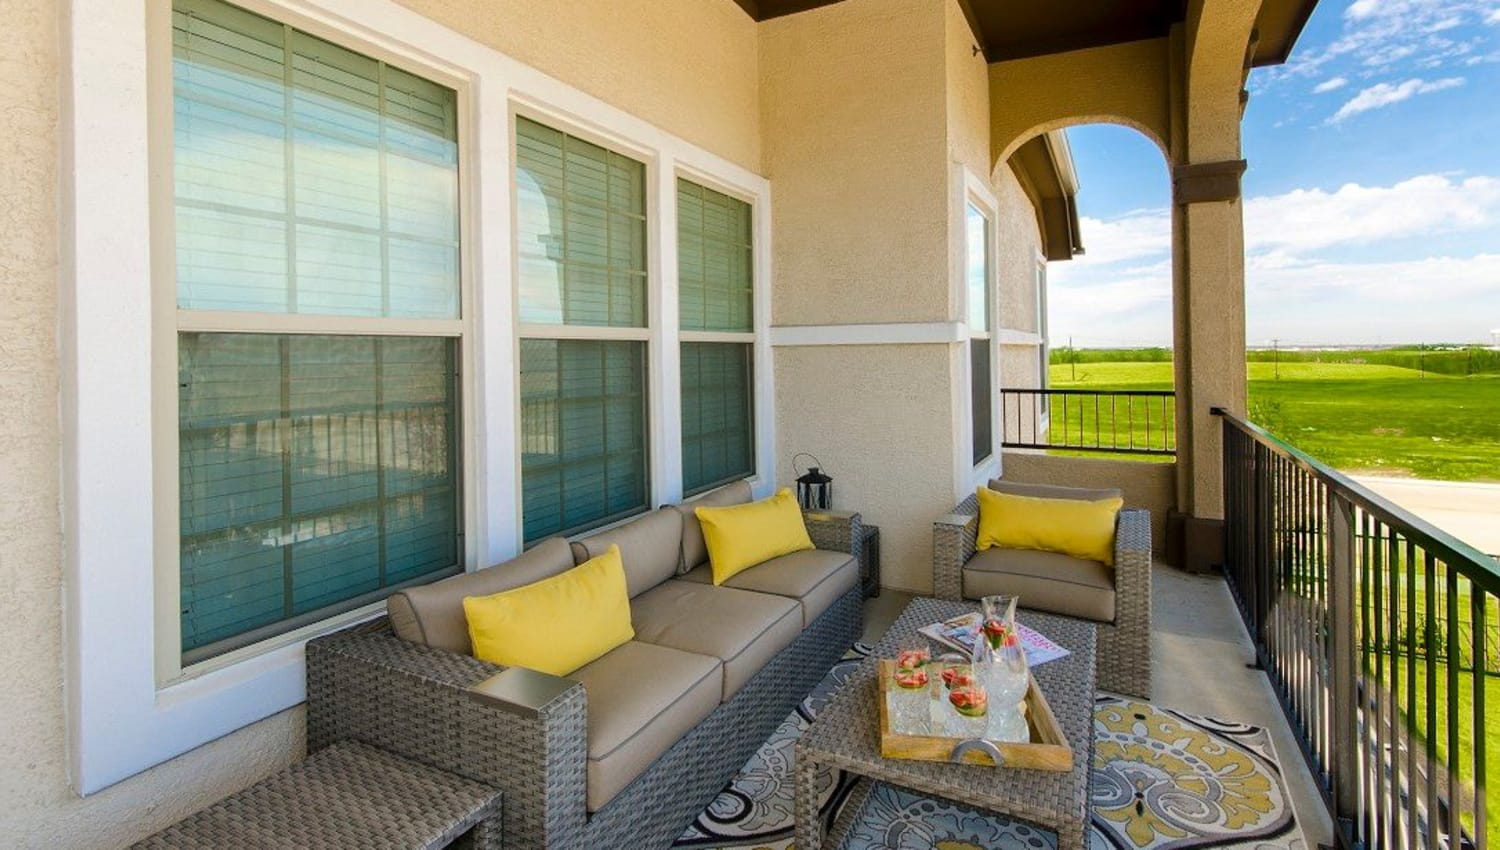 Expansive and well-furnished private balcony outside a model townhome at Olympus Woodbridge in Sachse, Texas